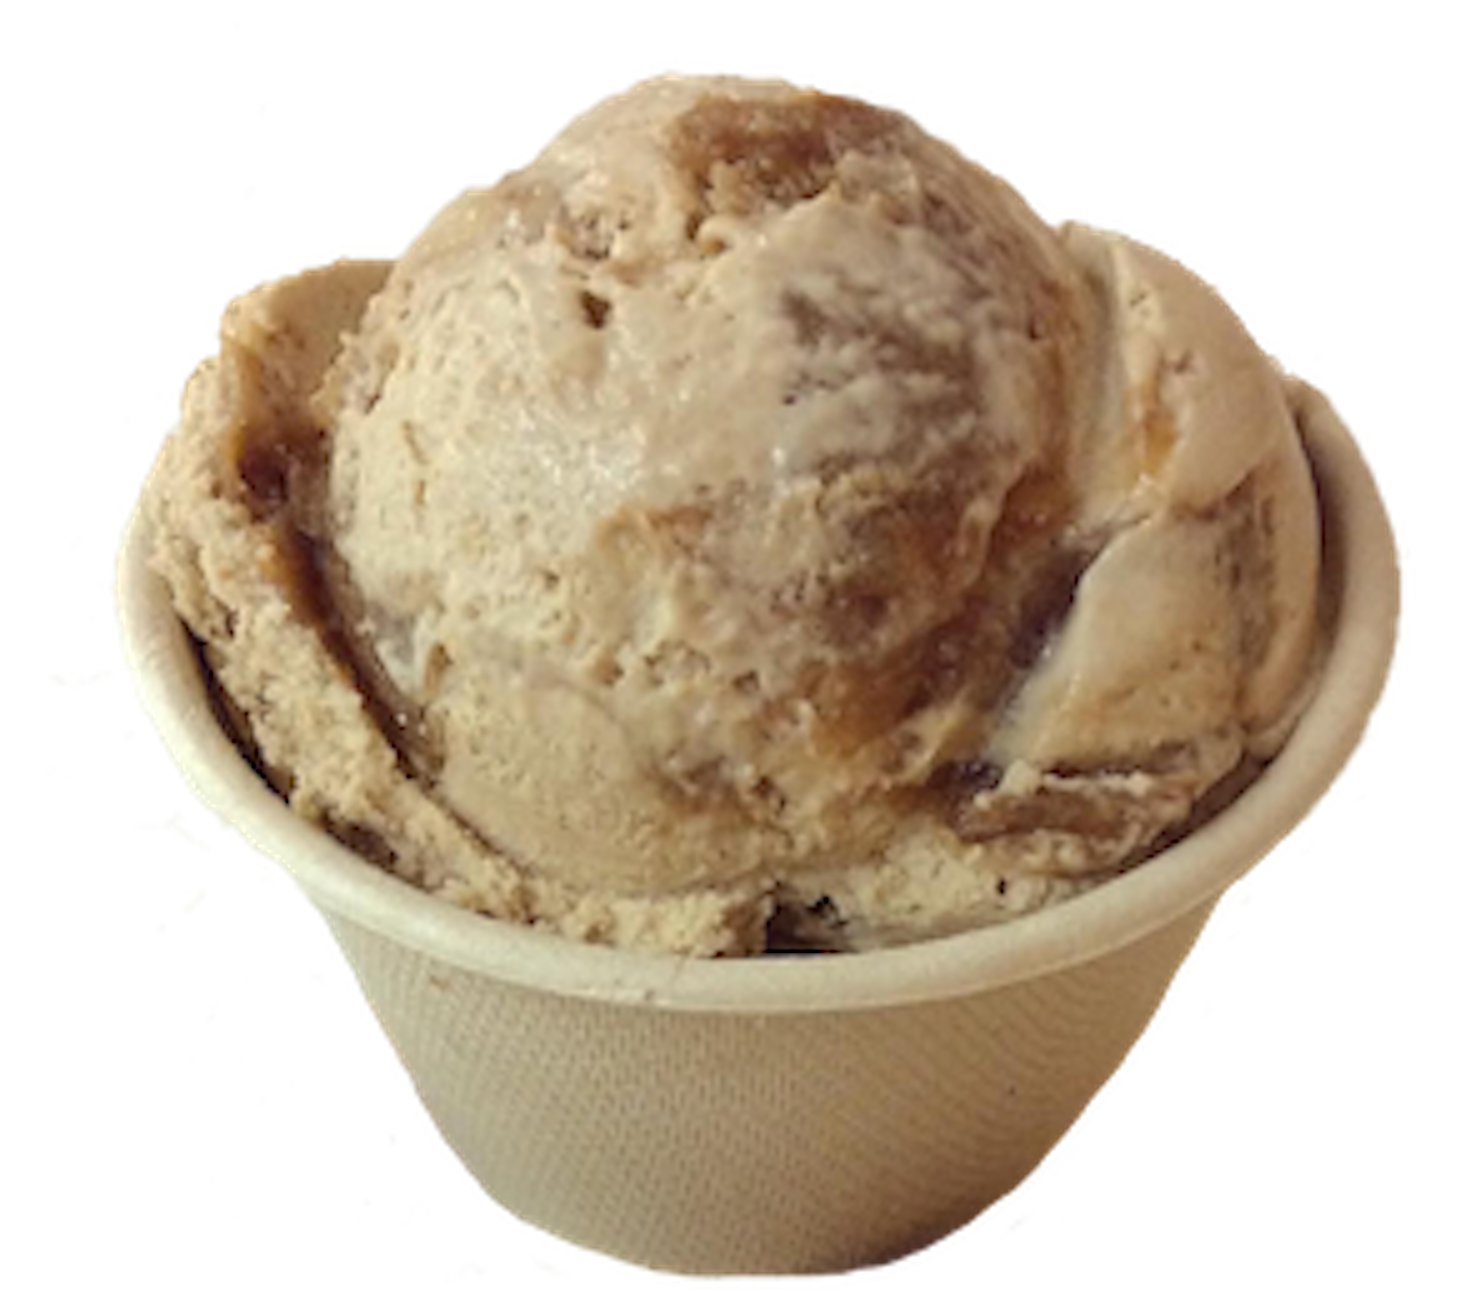 WE MAKE EACH BATCH OF ICE CREAM FROM SCRATCH WITHOUT DAIRY, EGGS, GLUTEN, WHITE OR REFINED SUGARS, OR ANYTHING ARTIFICIAL! - WE EVEN MAKE EVERY SINGLE COOKIE, BROWNIE, CARAMEL, CRUMBLE, PIECE OF FUDGE. PIE CRUST & CHOCOLATE CHIP FROM SCRATCH WITH THE SAME PLANT-BASED INGREDIENTS!